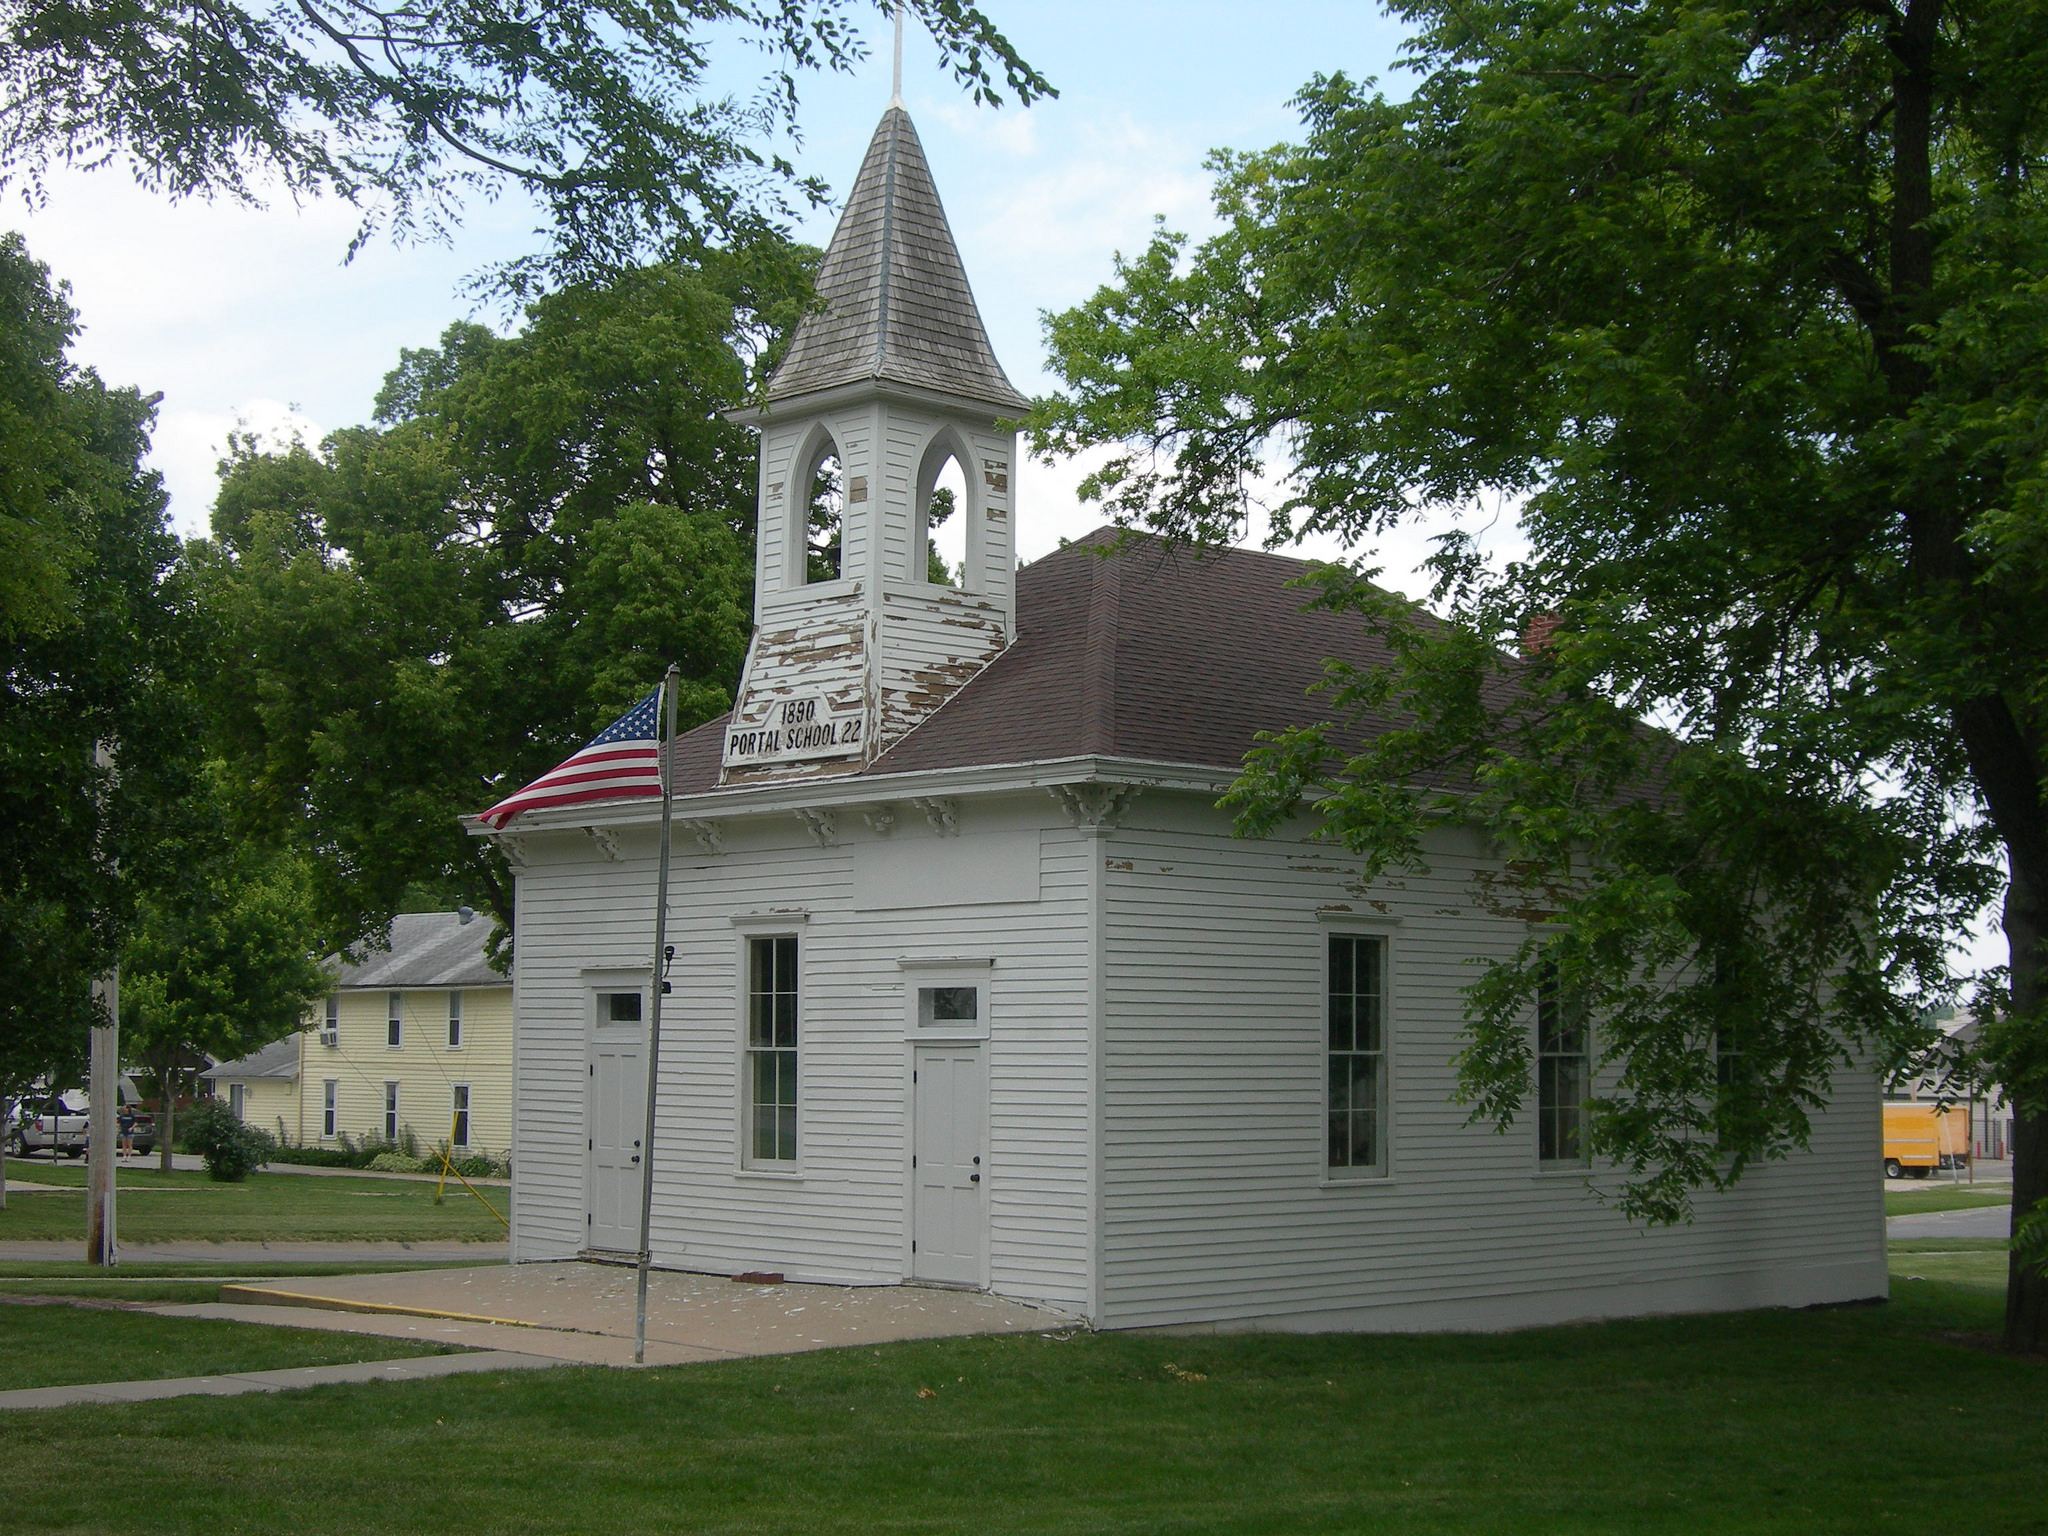 The Portal School In Papillion Is One Of The Most Haunted